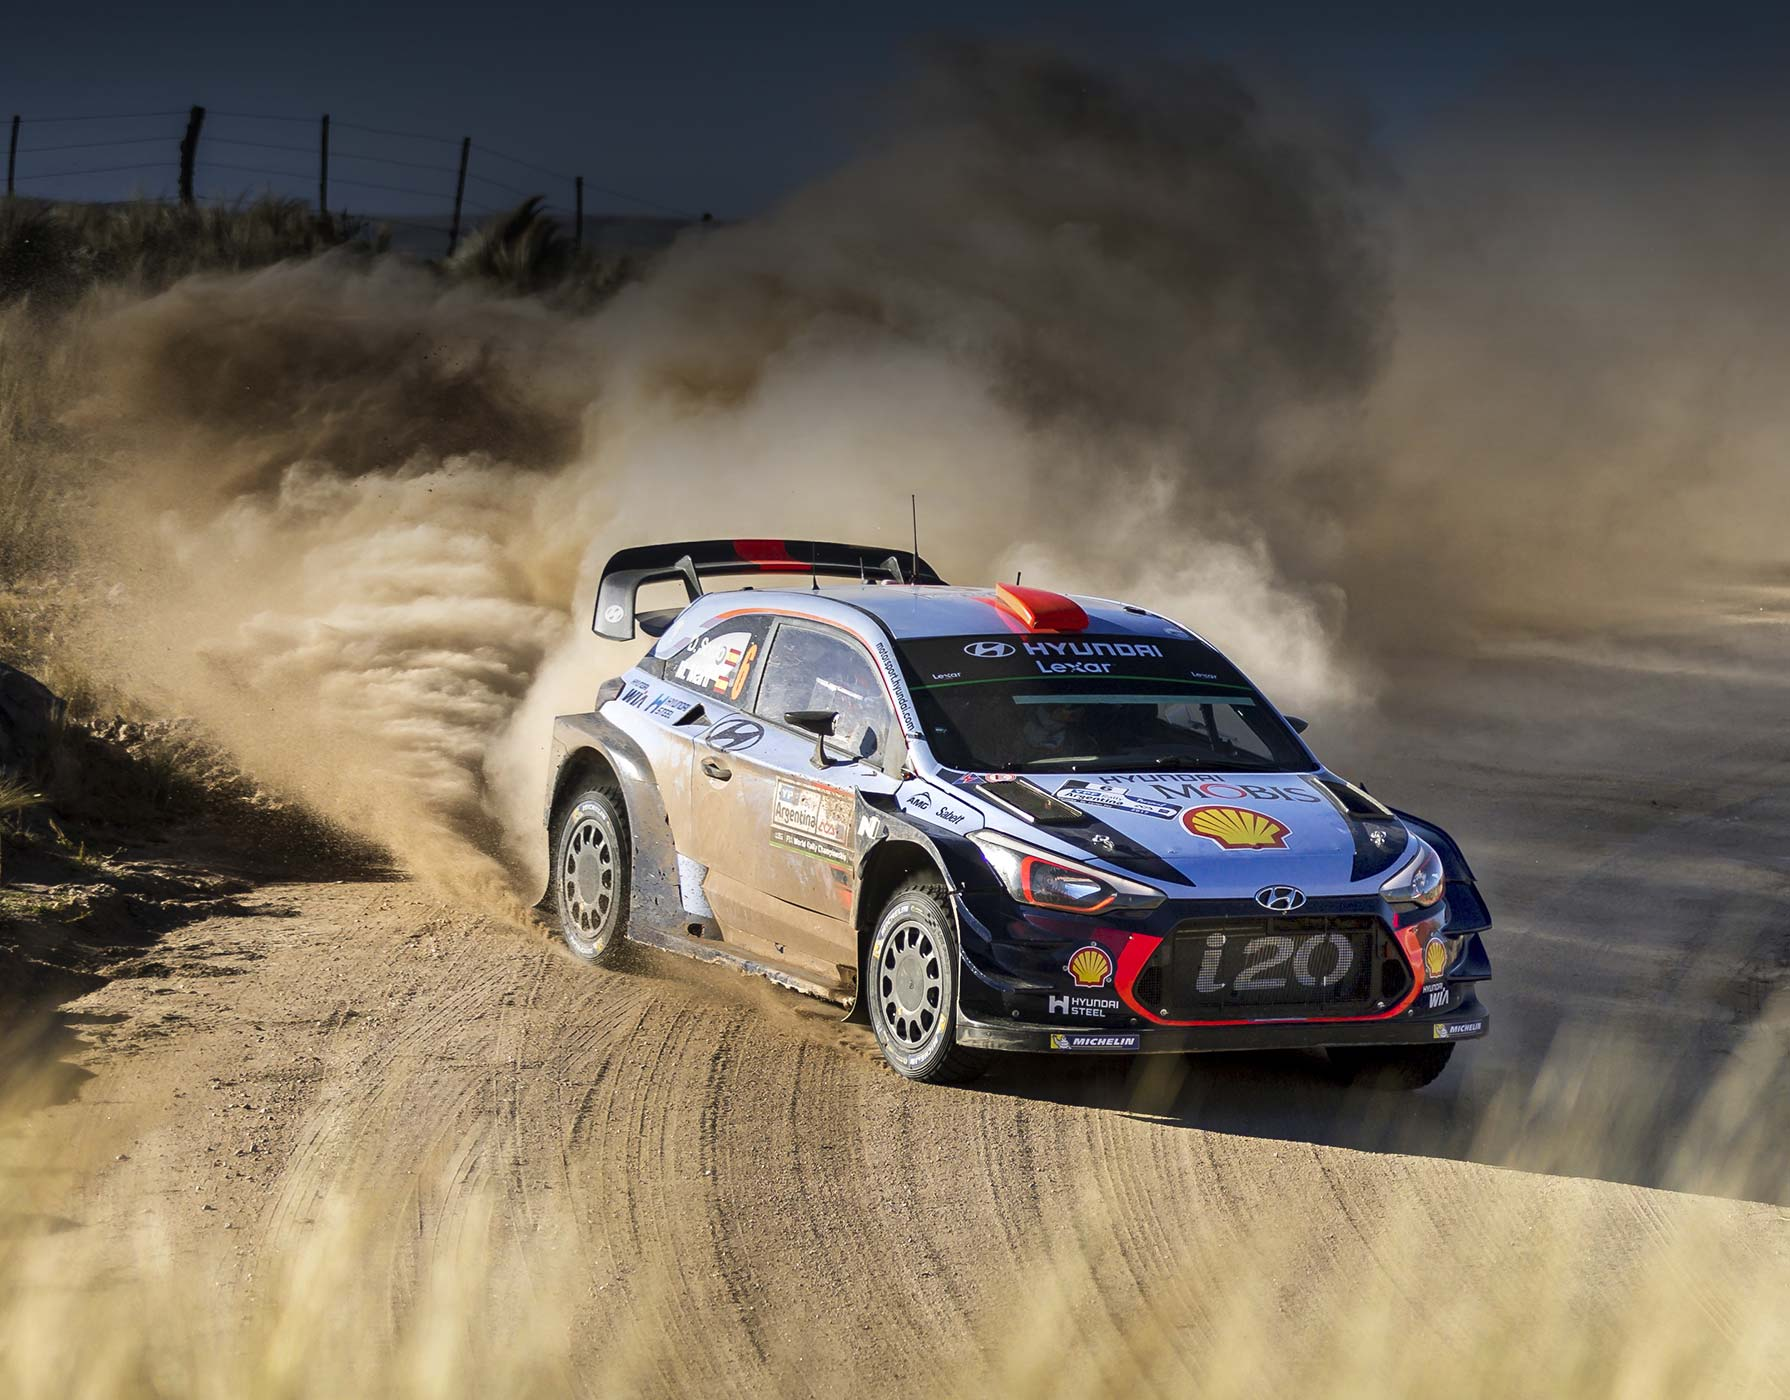 right side front view of i20 on the racing track of the world rally with sandstorm